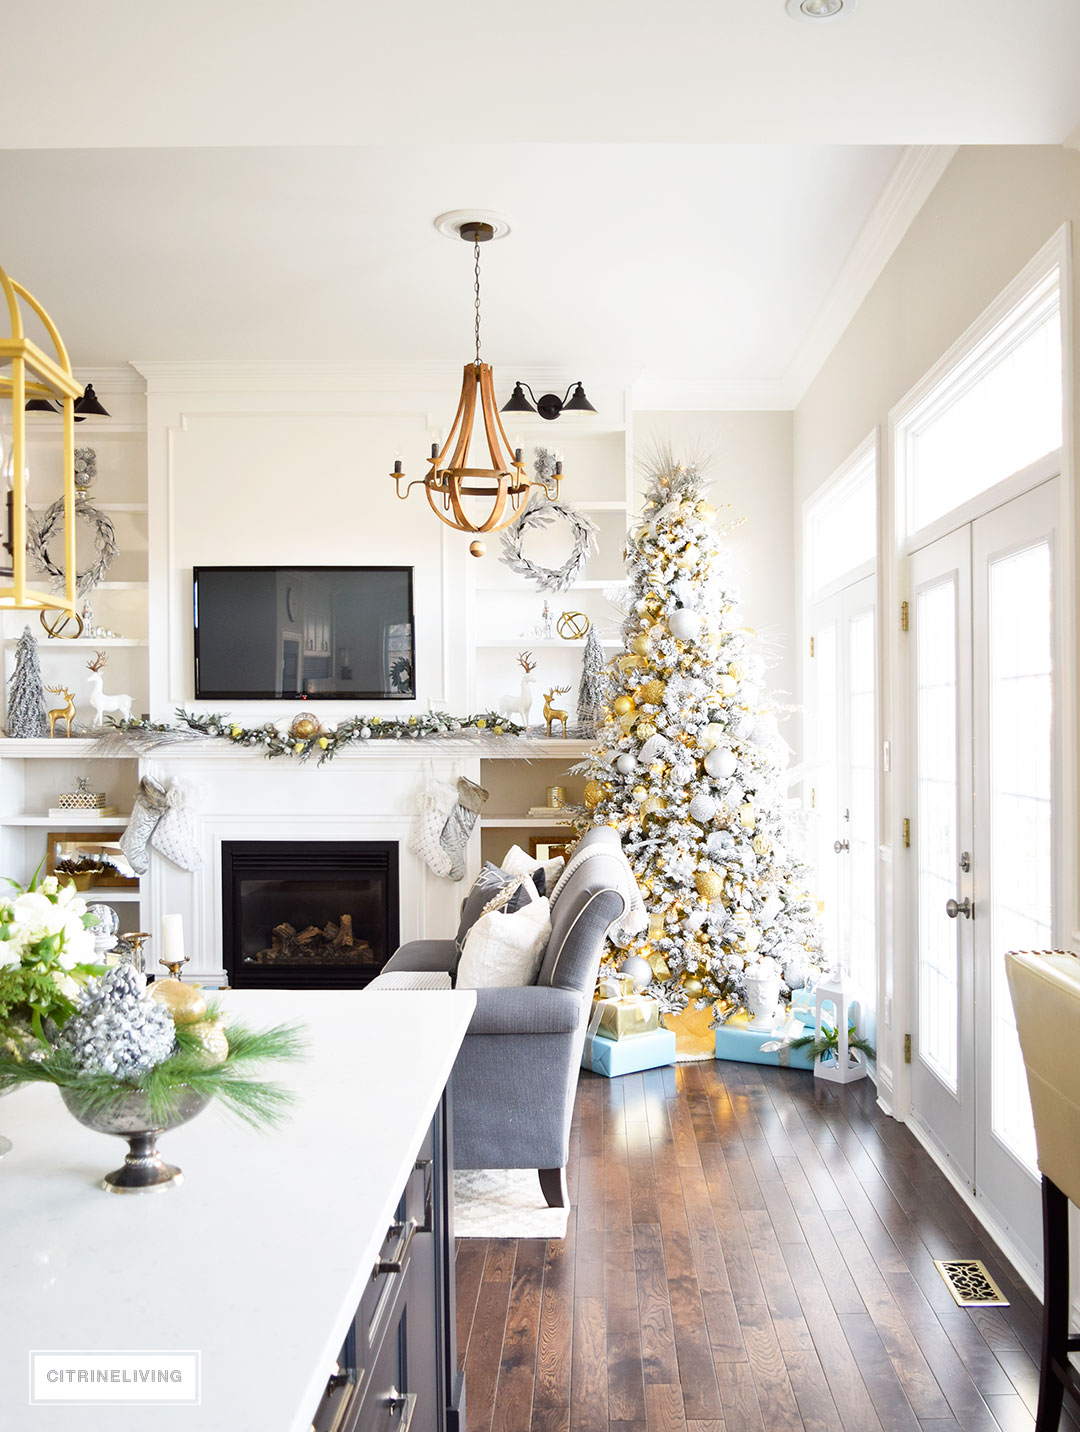 Christmas Home Tour - Stunning flocked Christmas tree with mixed metallics and icy blues accents create a perfectly chic Holiday theme